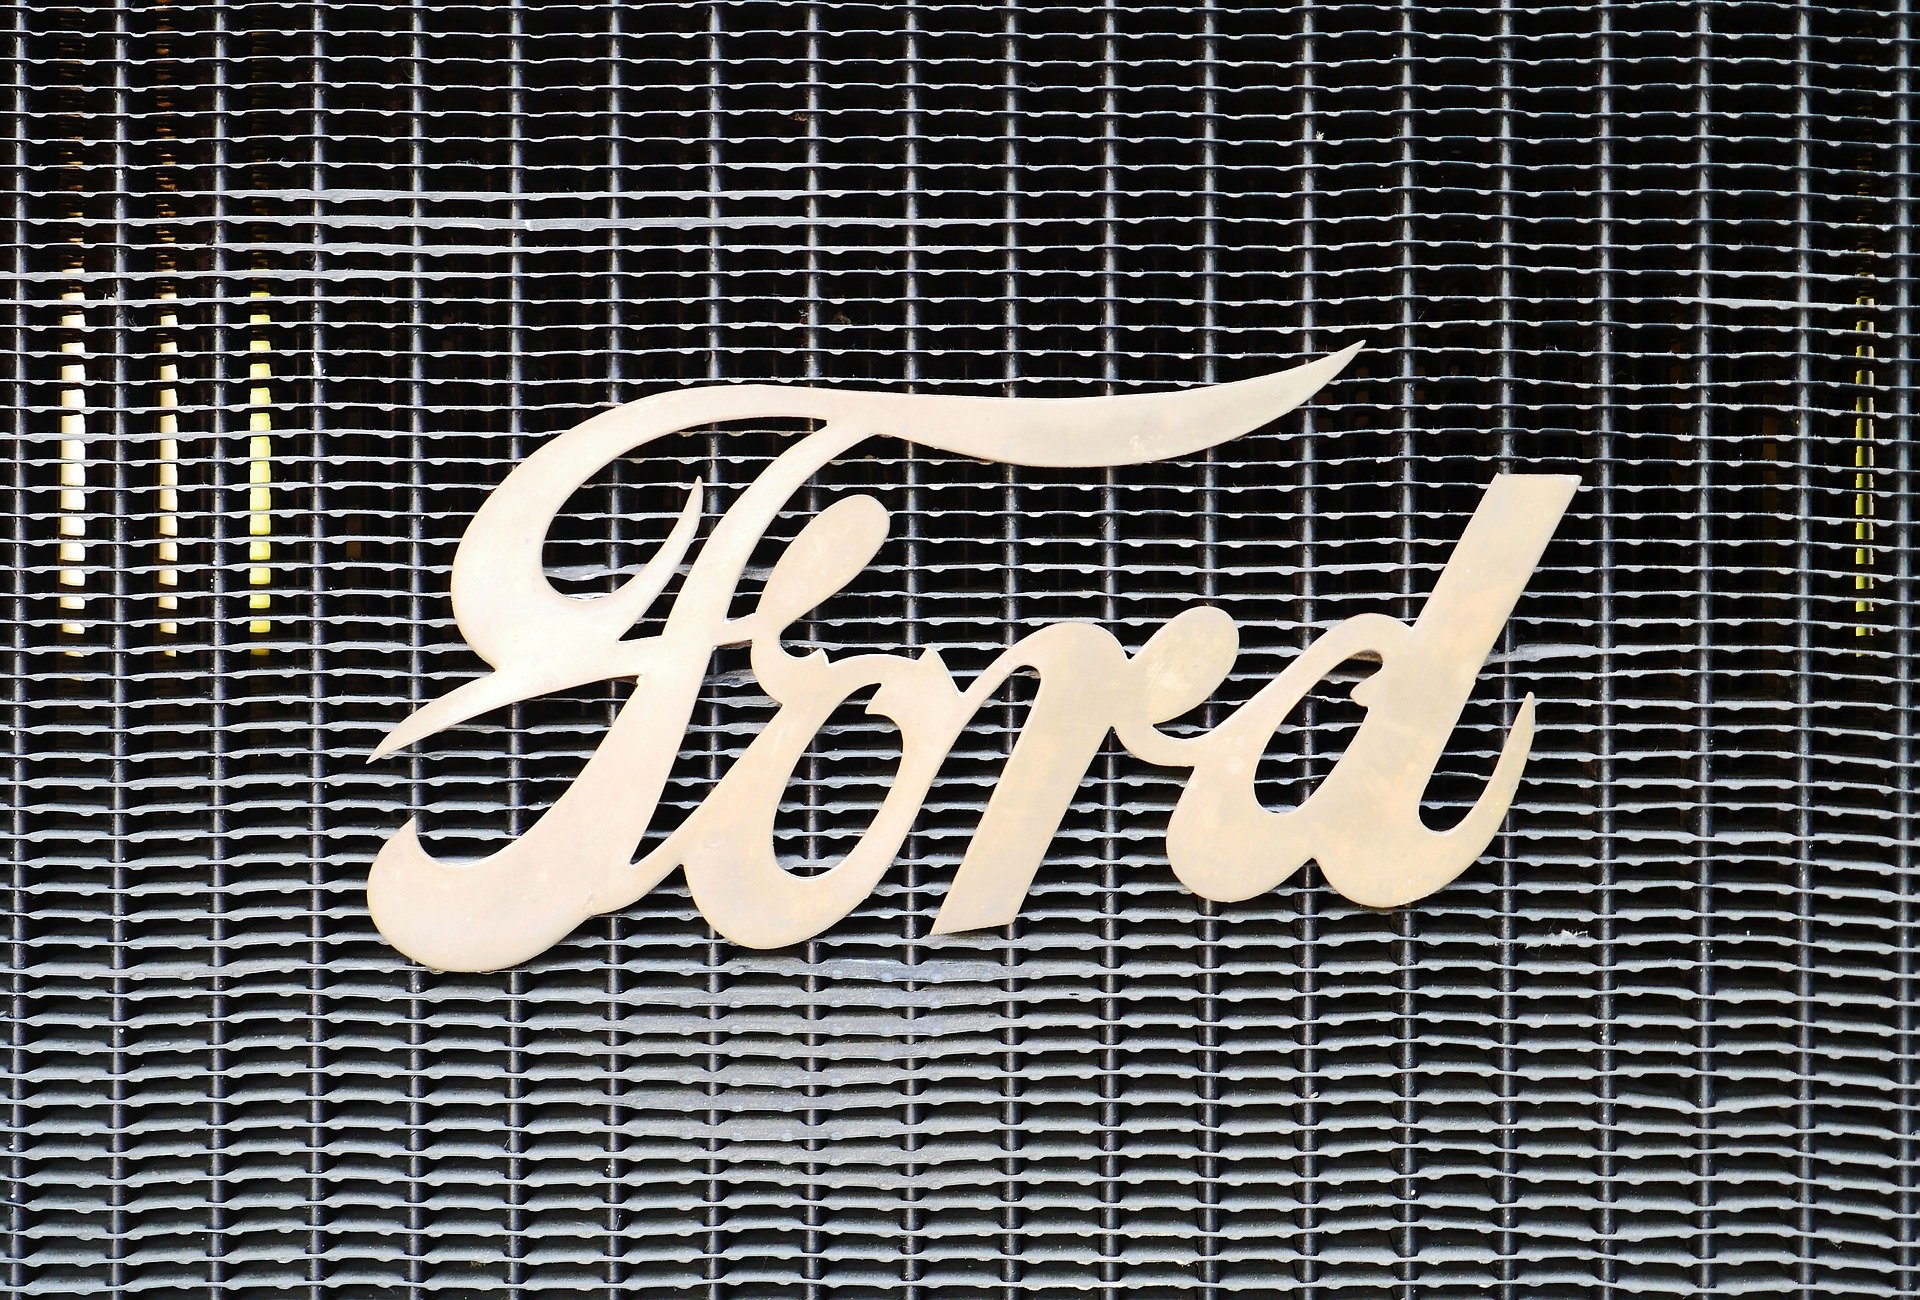 Ford Pulls Brakes on Brazil Factory - EMEA Brief 20 Feb